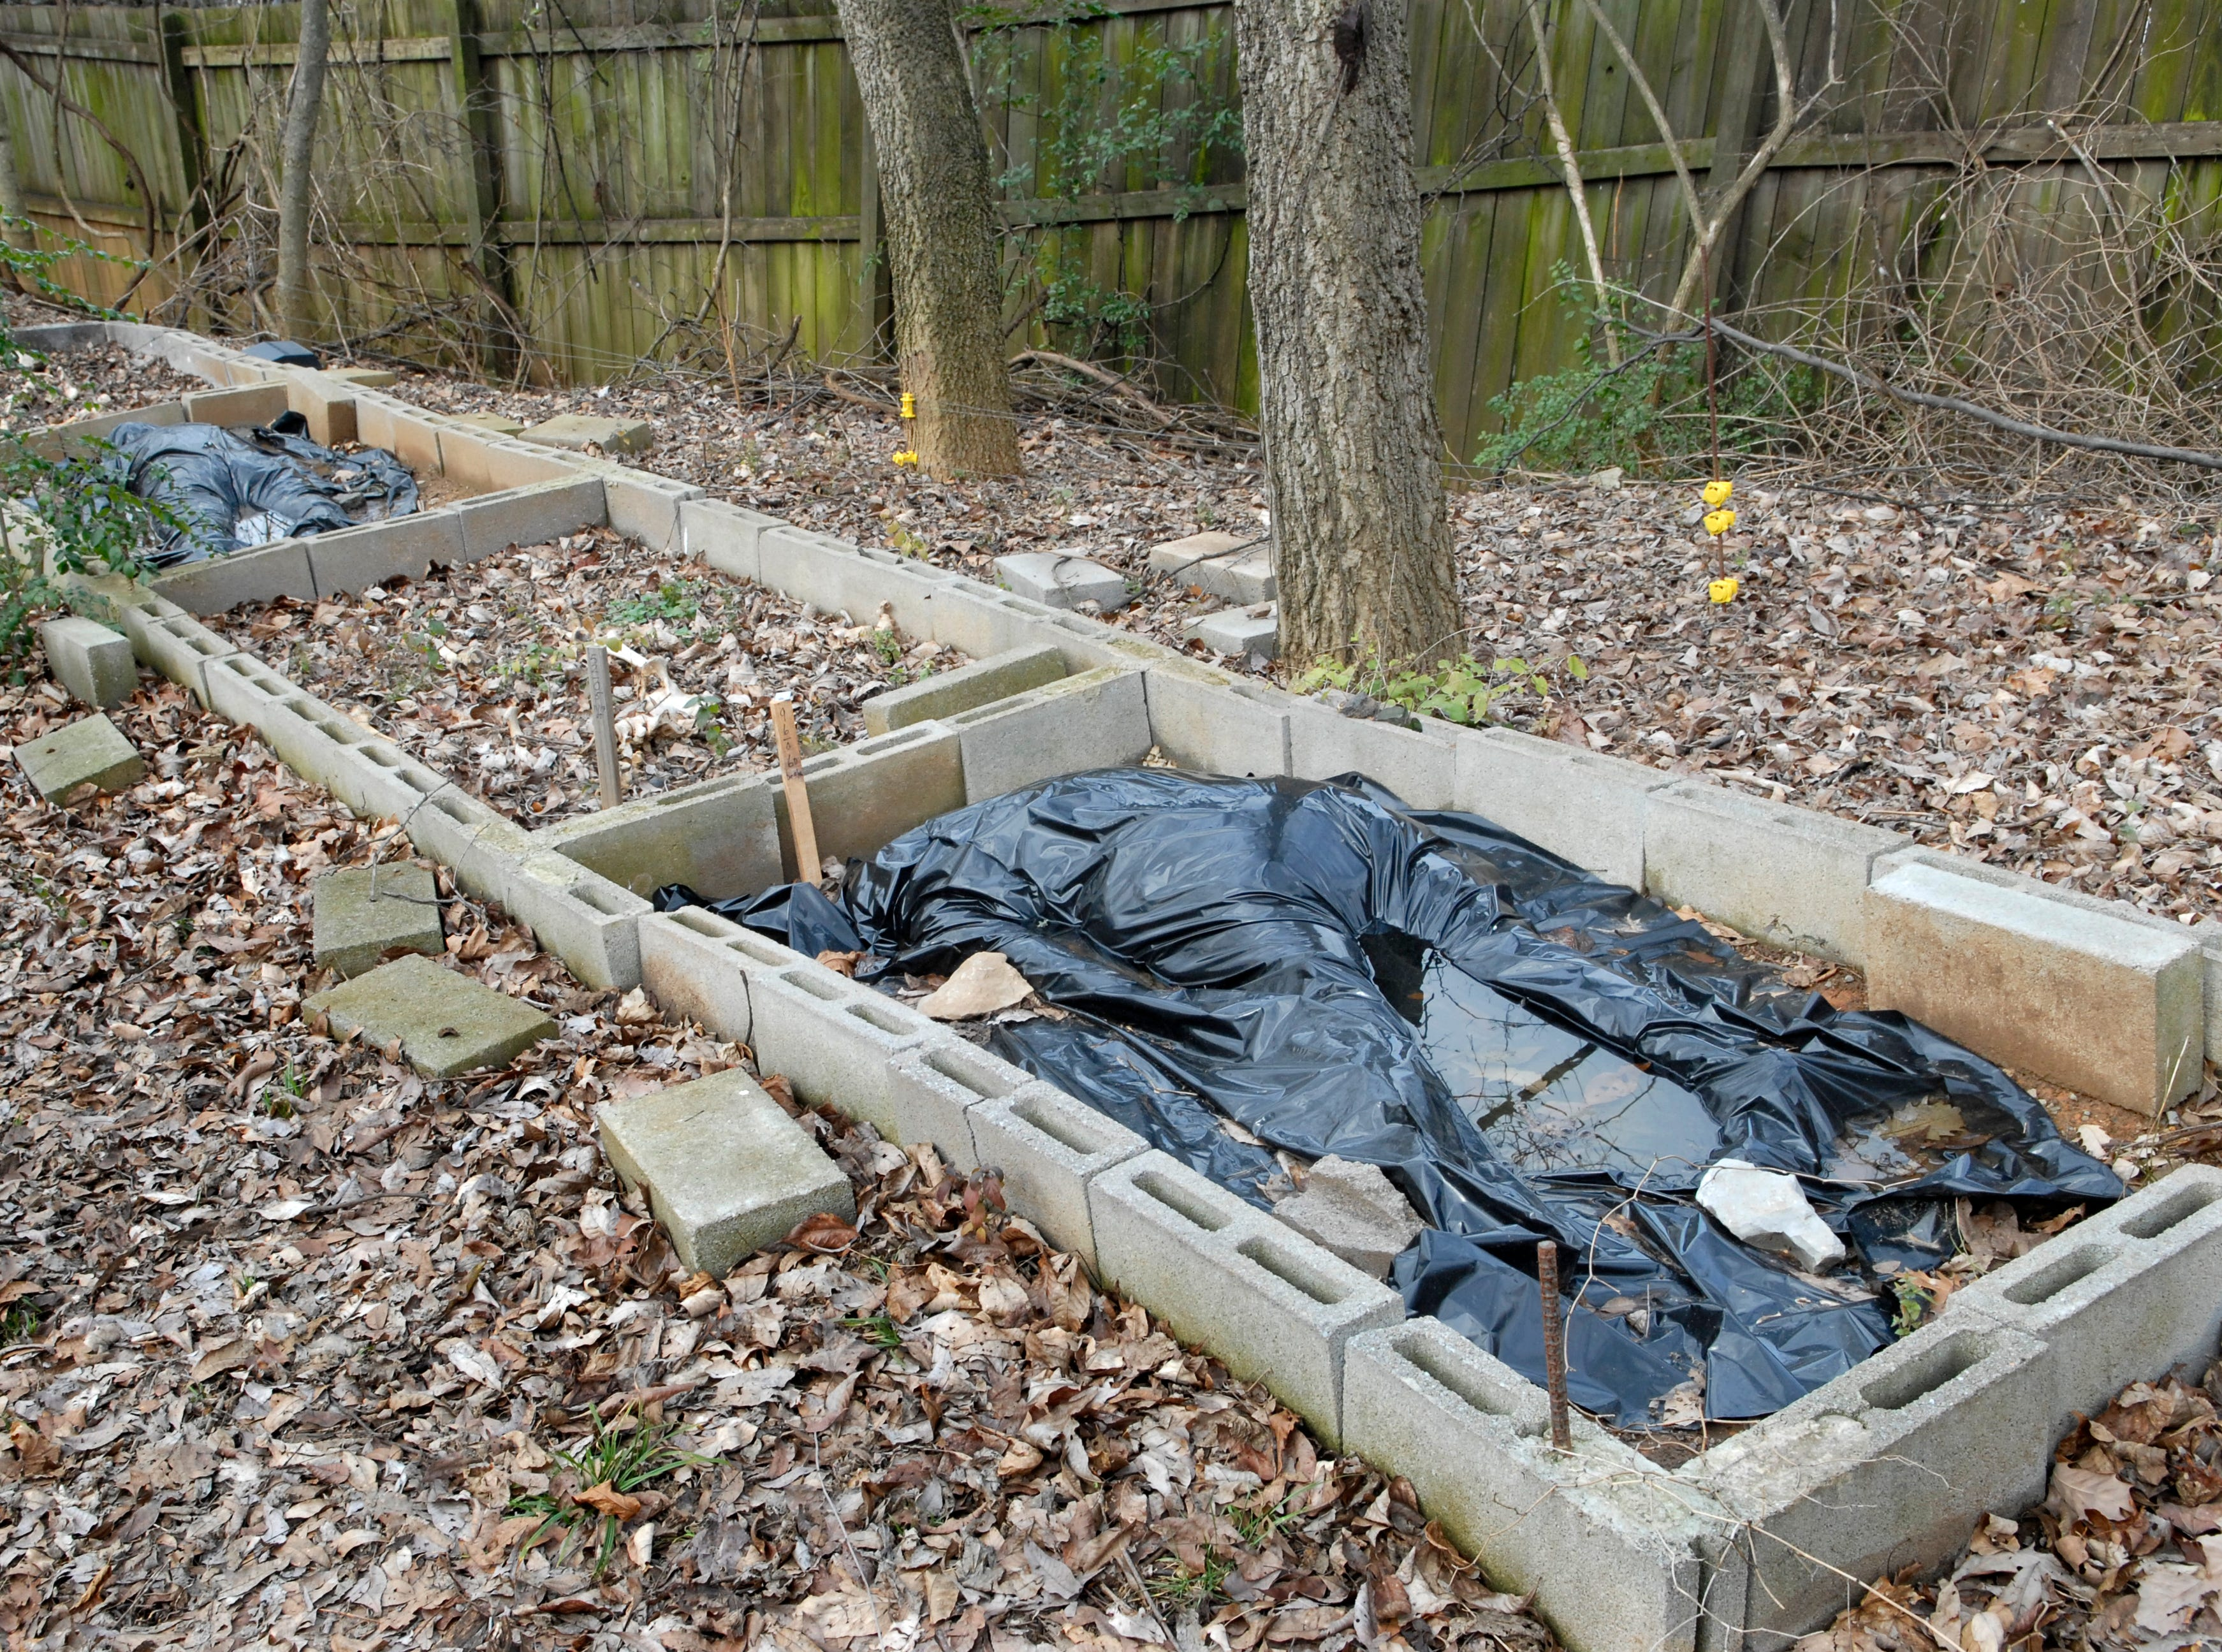 """Bodies lie covered in various stages of decomposition Tuesday inside the Anthropology Research Facility, better known as """"The Body Farm"""" in 2007. With more body donations and an increased amount of research going on at the one-acre facility, the Forensic Anthropolgy Center would like to see an additional 15 acres of land allocated for their research."""